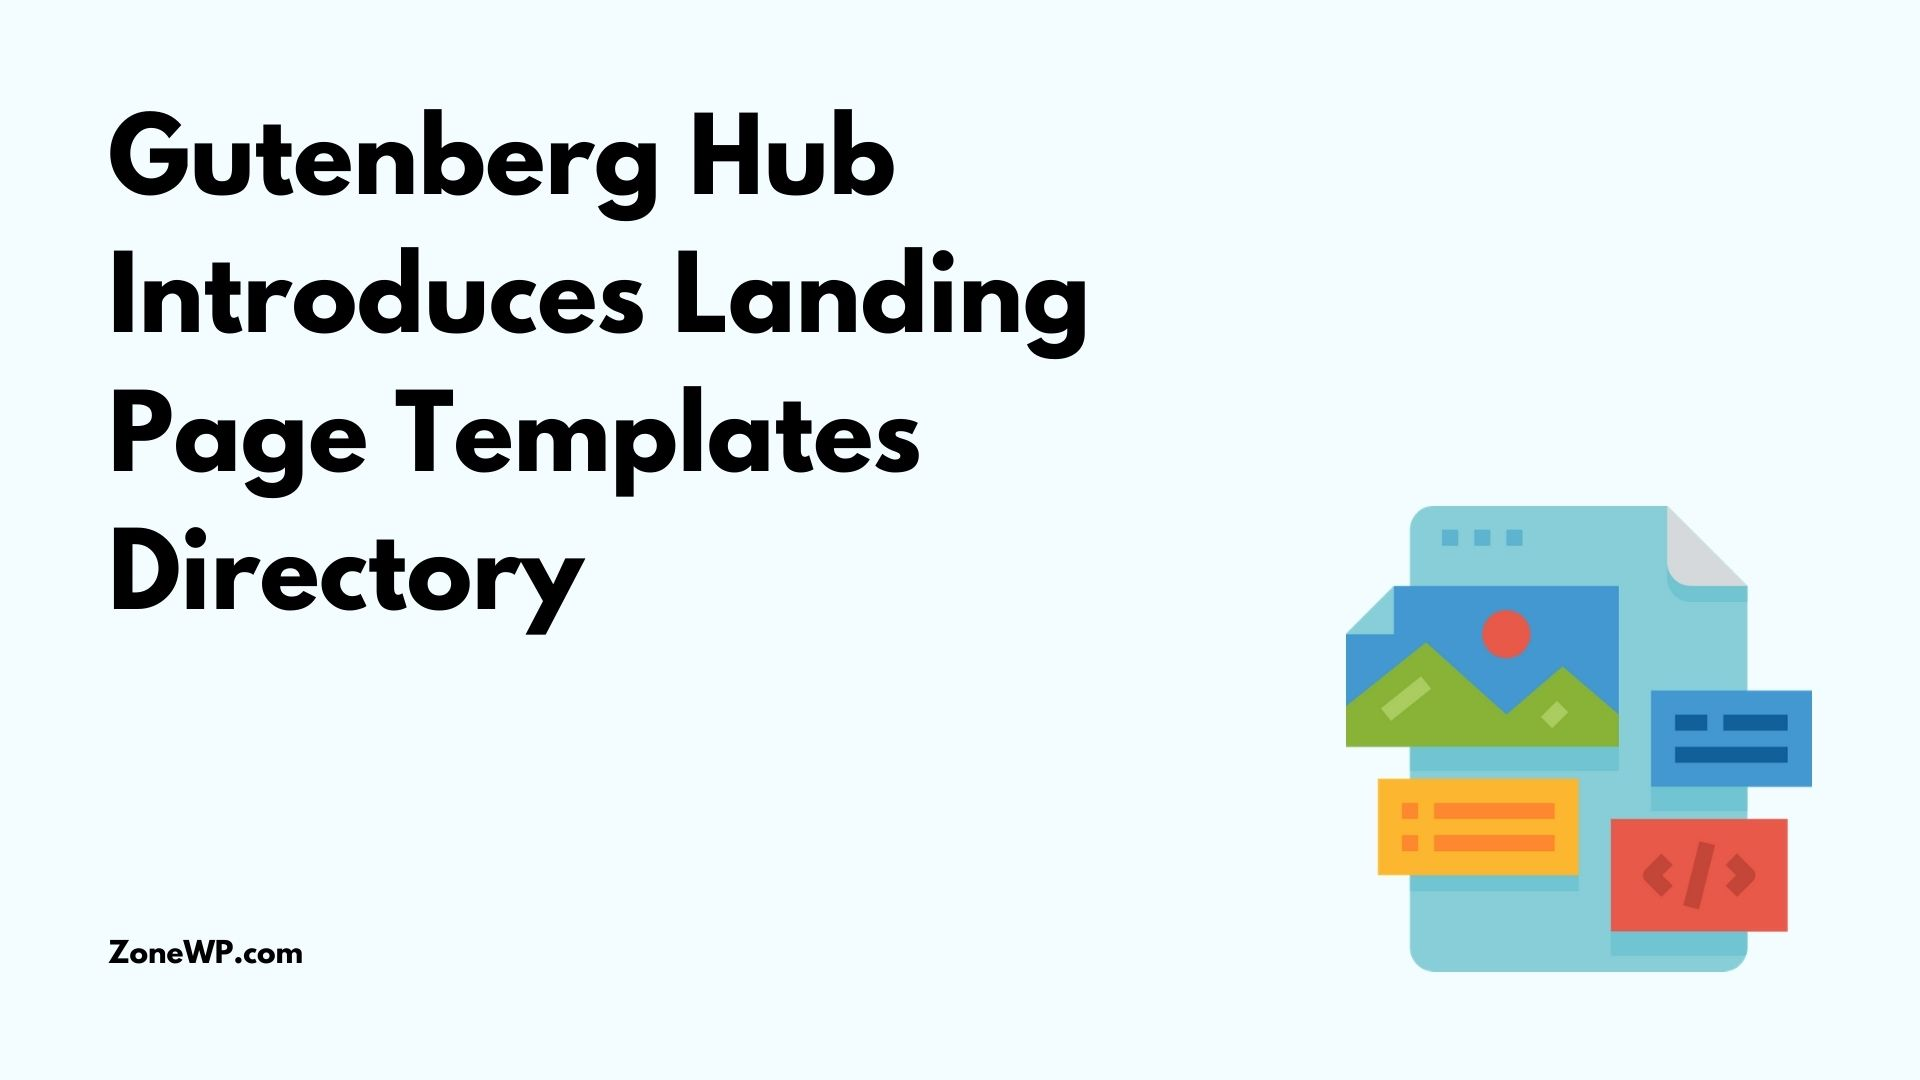 Gutenberg Hub Introduces Landing Page Templates Directory